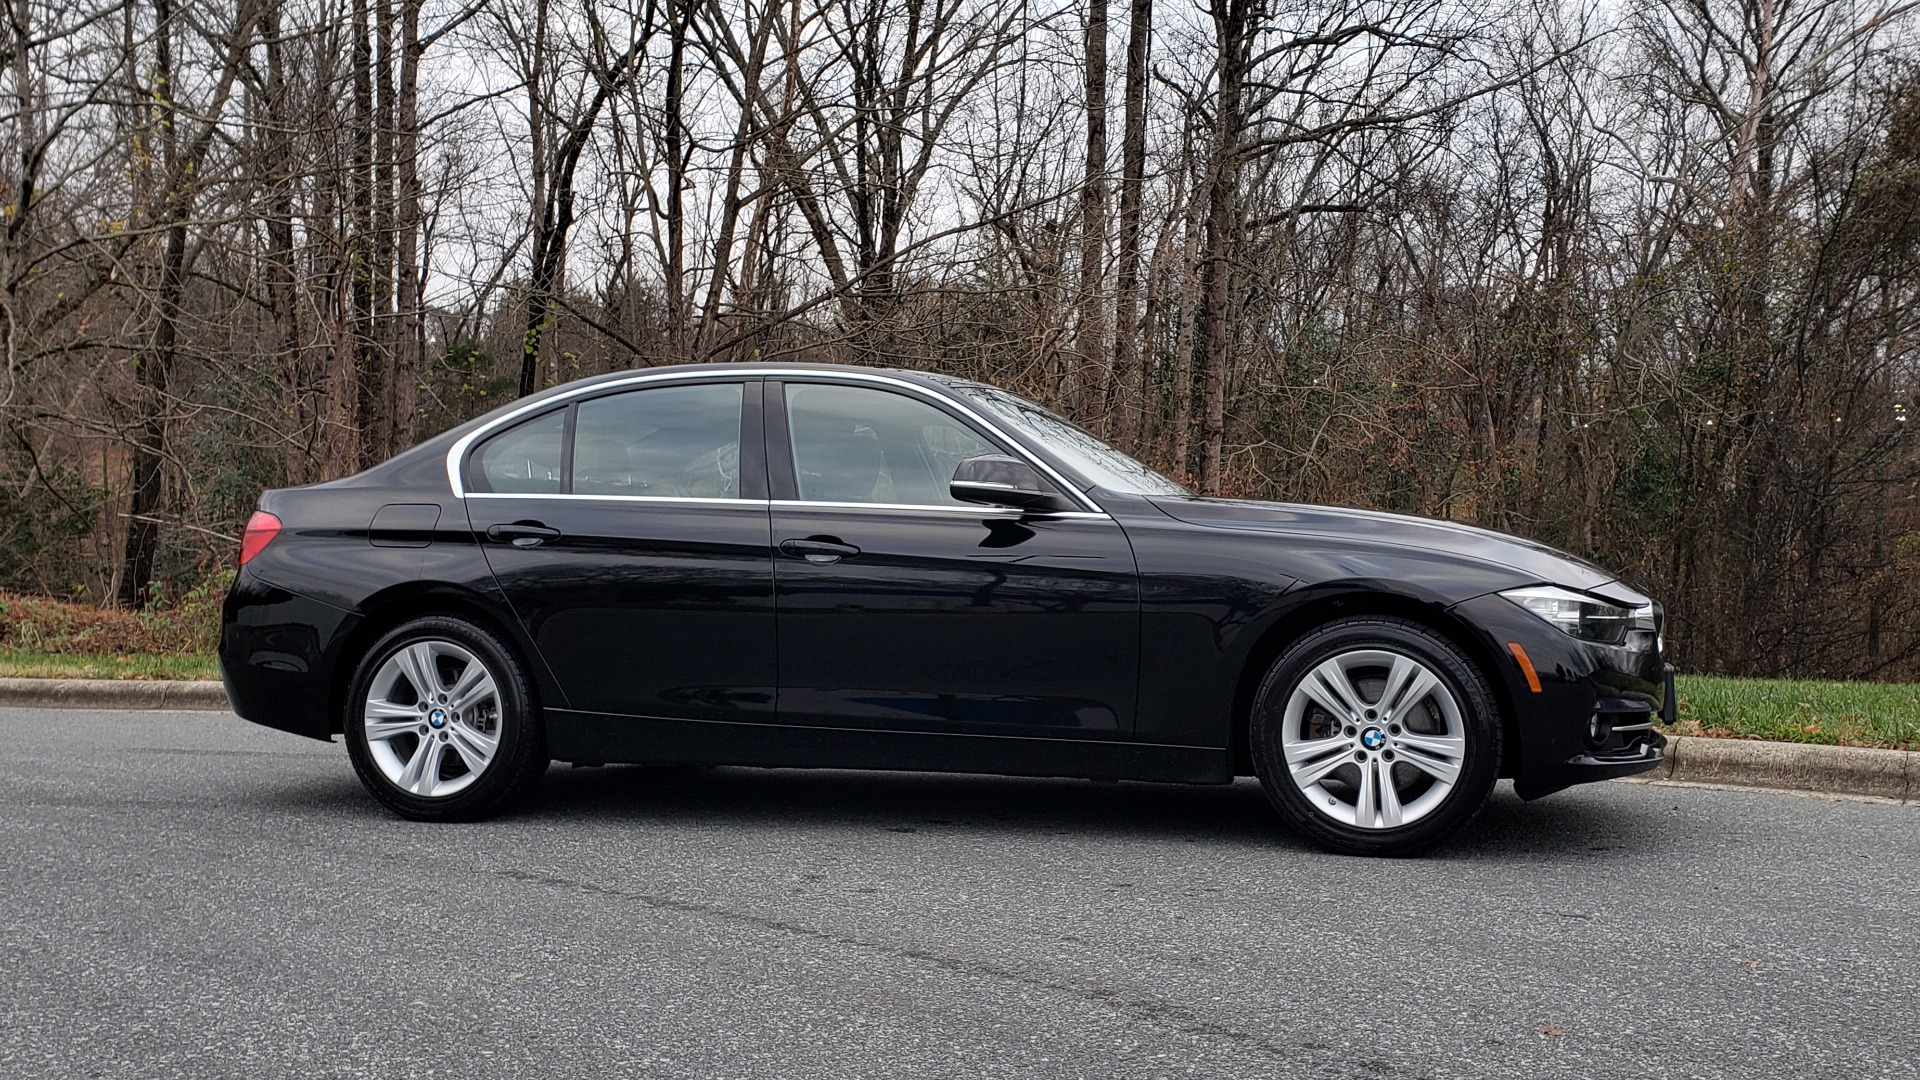 Used 2017 BMW 3 SERIES 330I XDRIVE / AWD / HEATED SEATS / LOW MILES for sale $23,495 at Formula Imports in Charlotte NC 28227 5